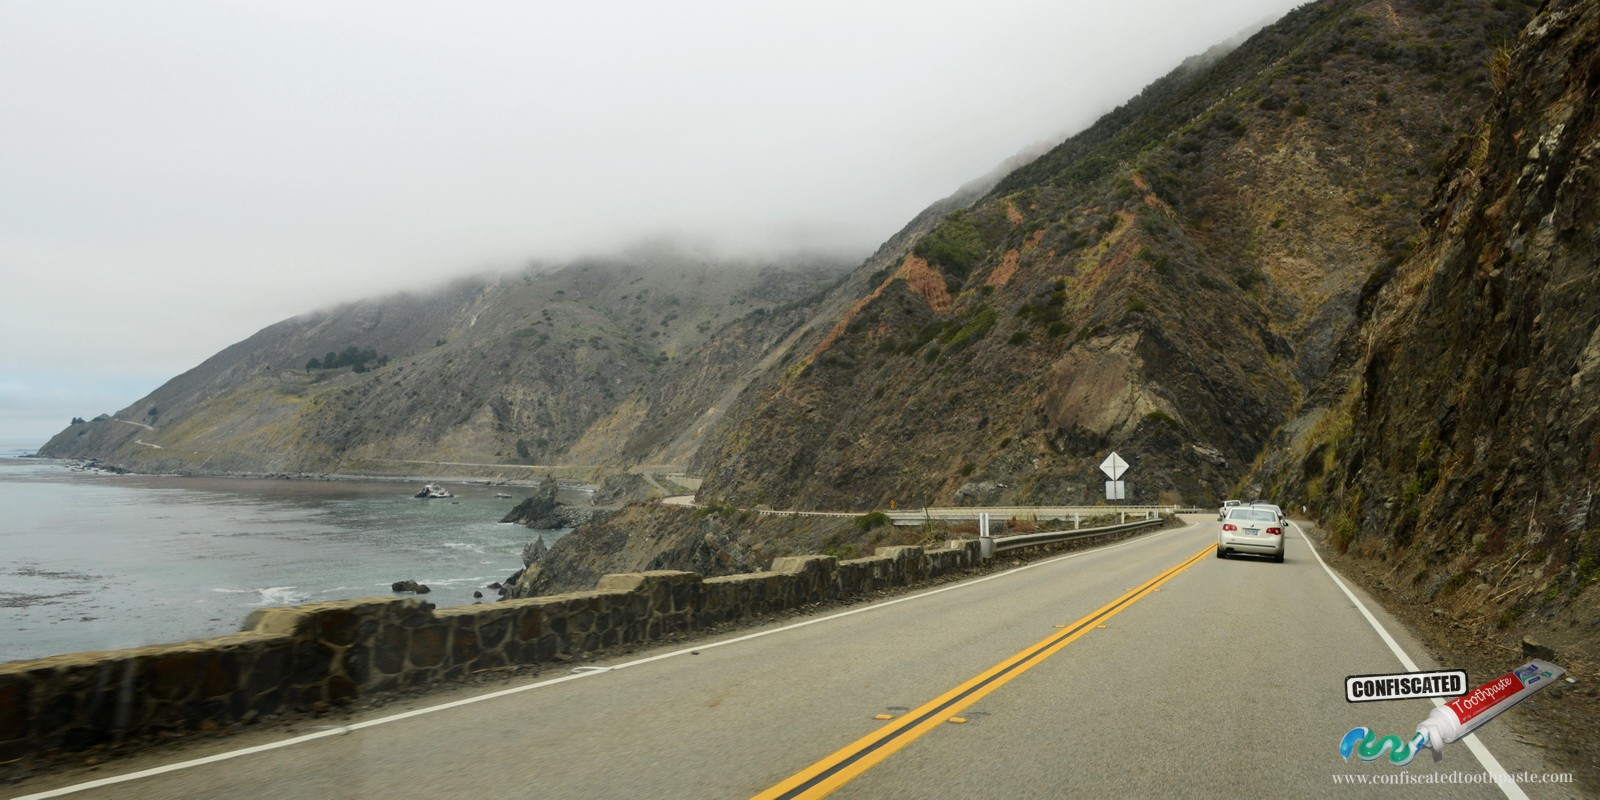 A Roadtrip along the Pacific Coast Highway, California- Stories, Itineraries, Photos and Suggestions for Your Trip